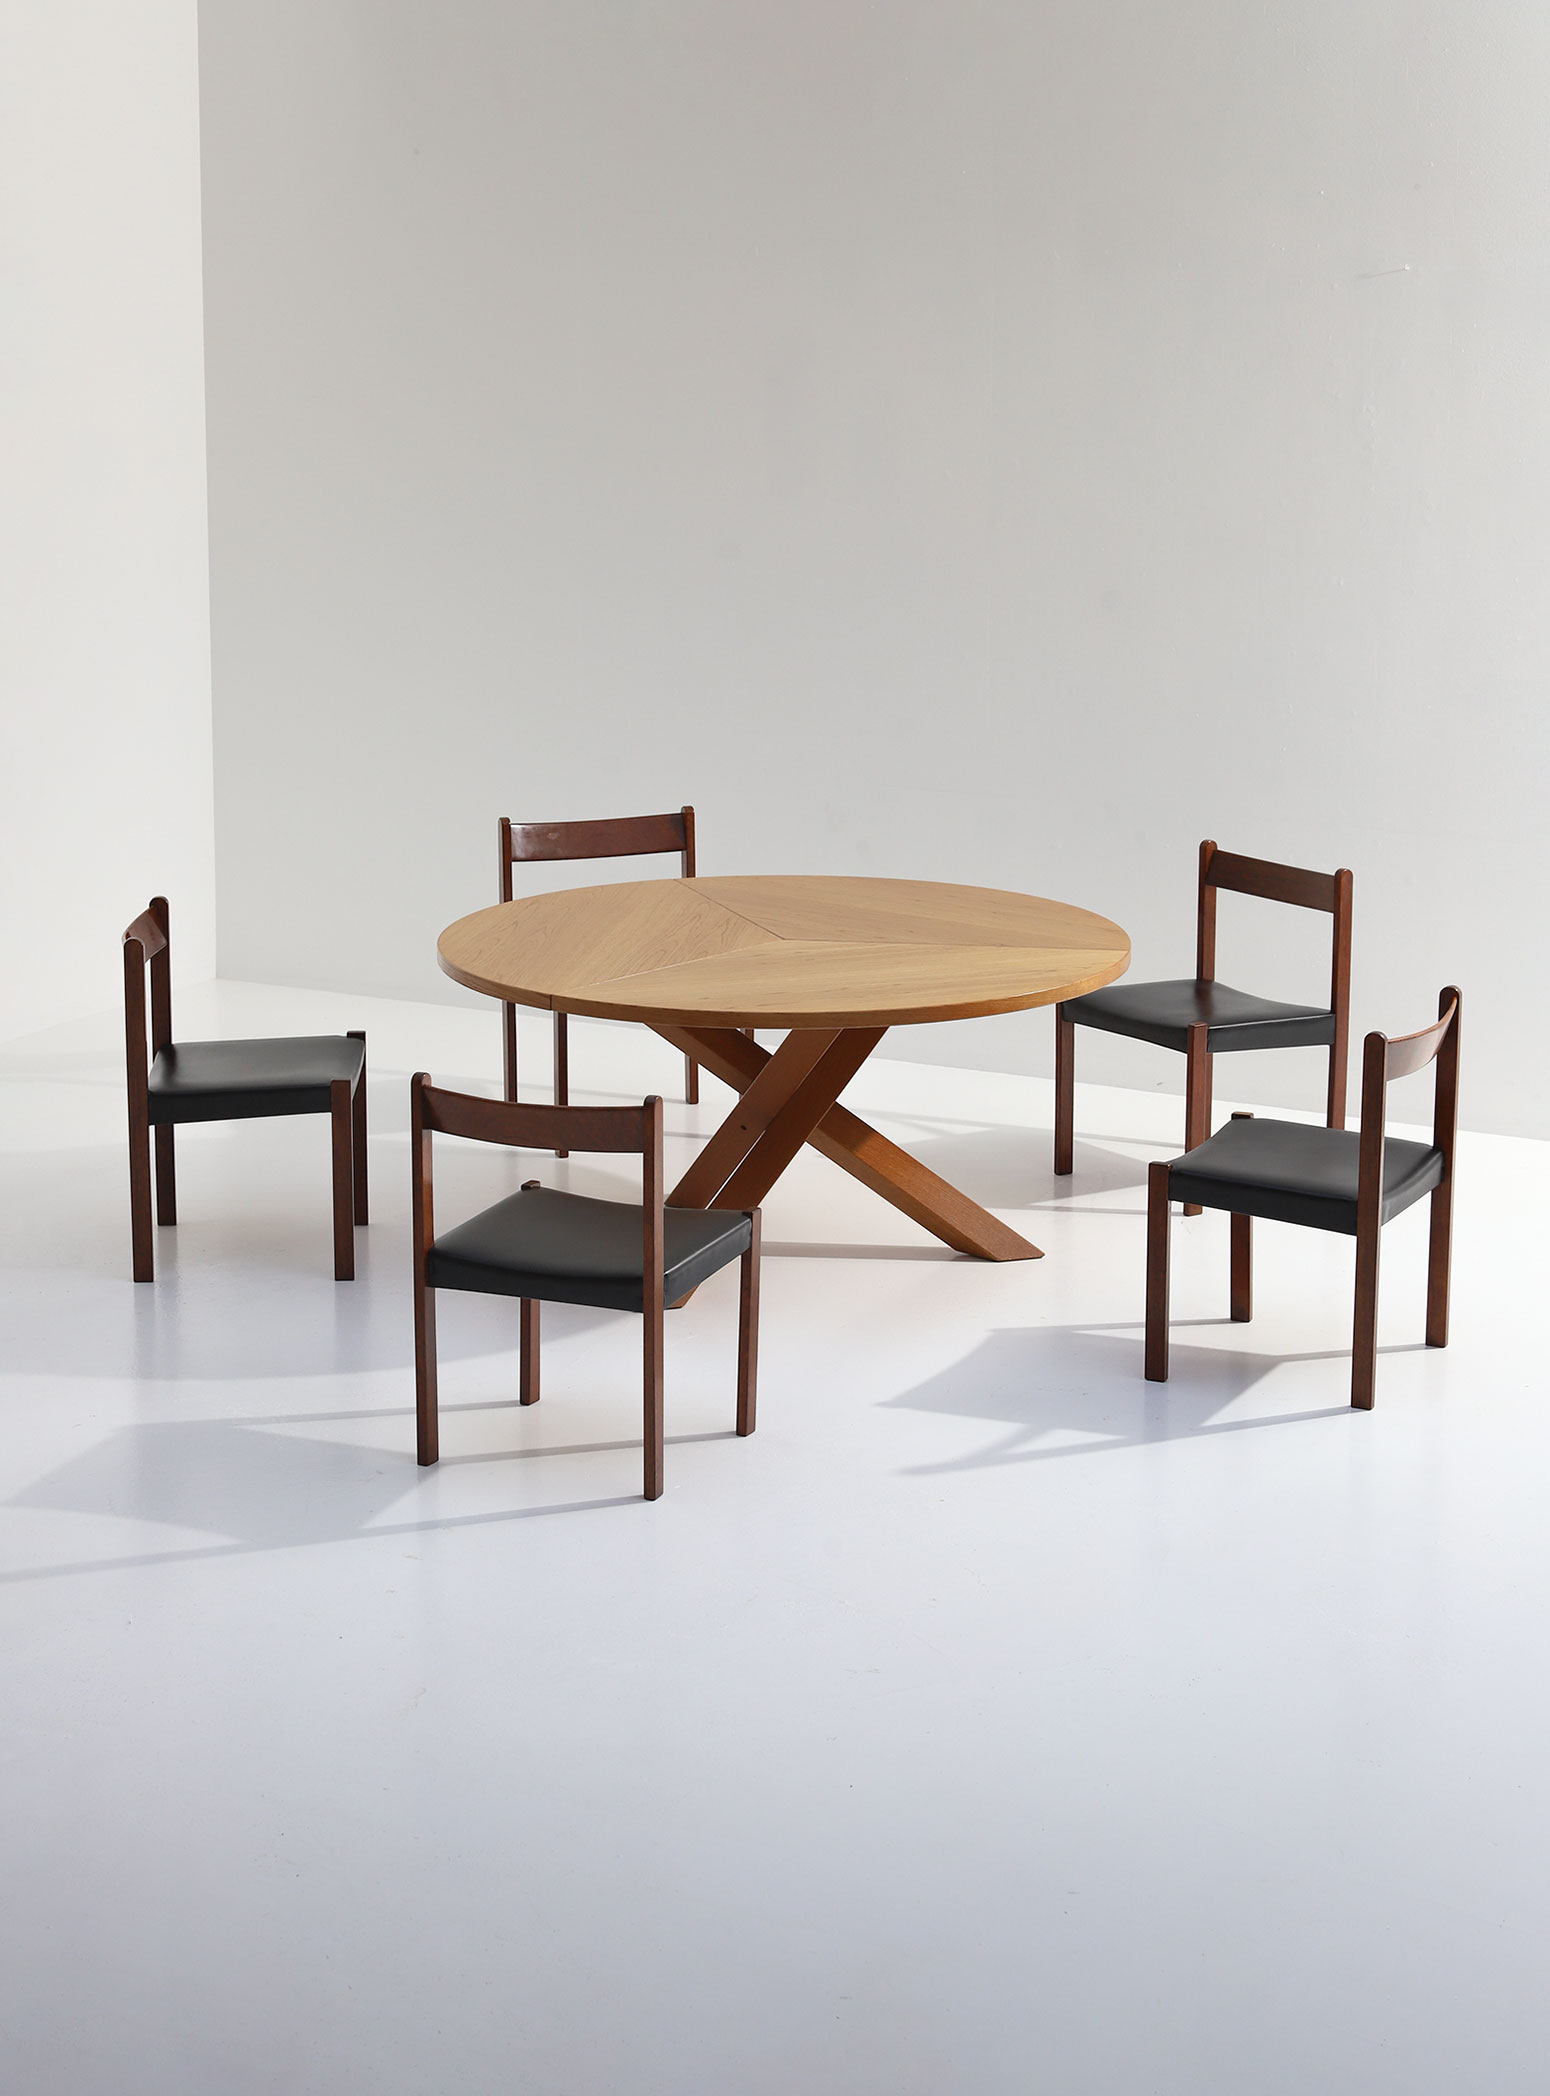 Gerard Geytenbeek Dining Table for AZS The Netherlandsimage 8